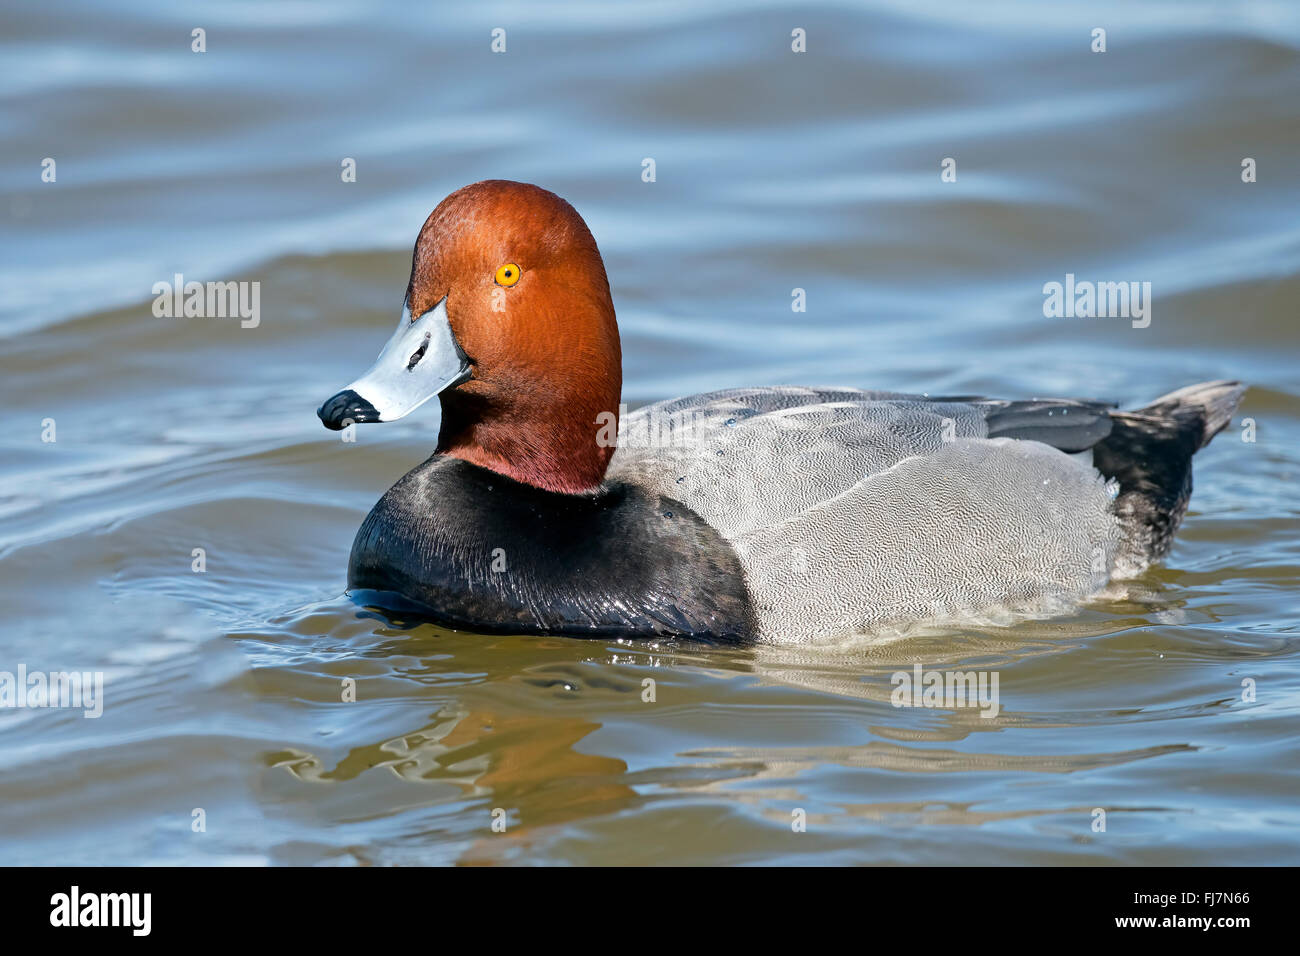 Male Redhead Duck - Stock Image